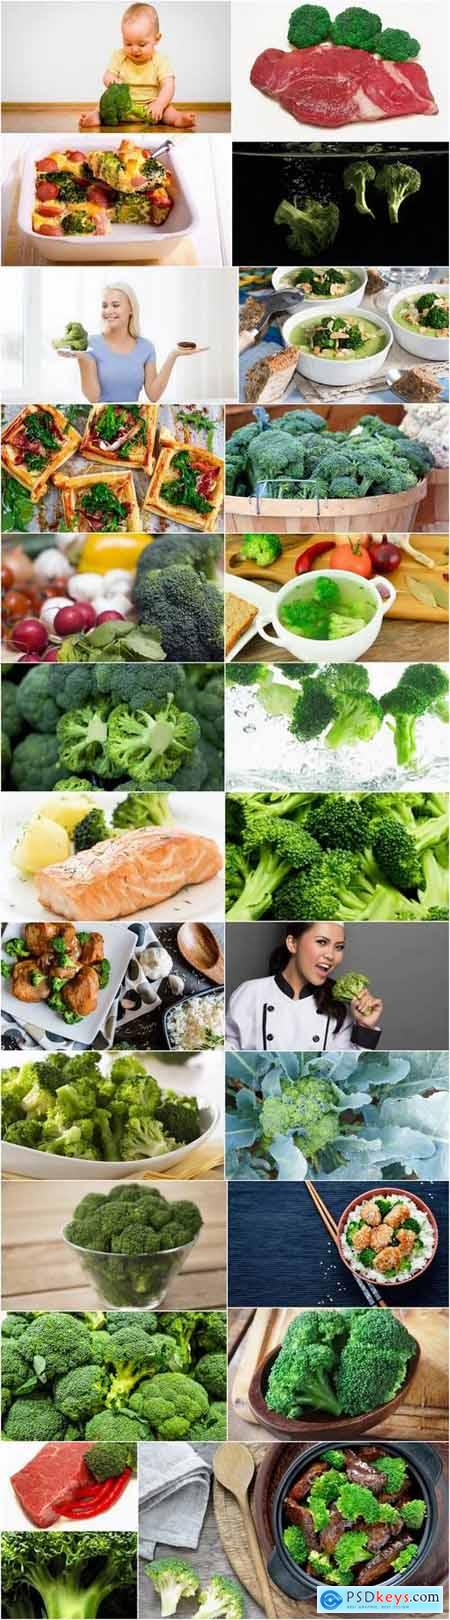 Broccoli cabbage food meal dish 25 HQ Jpeg